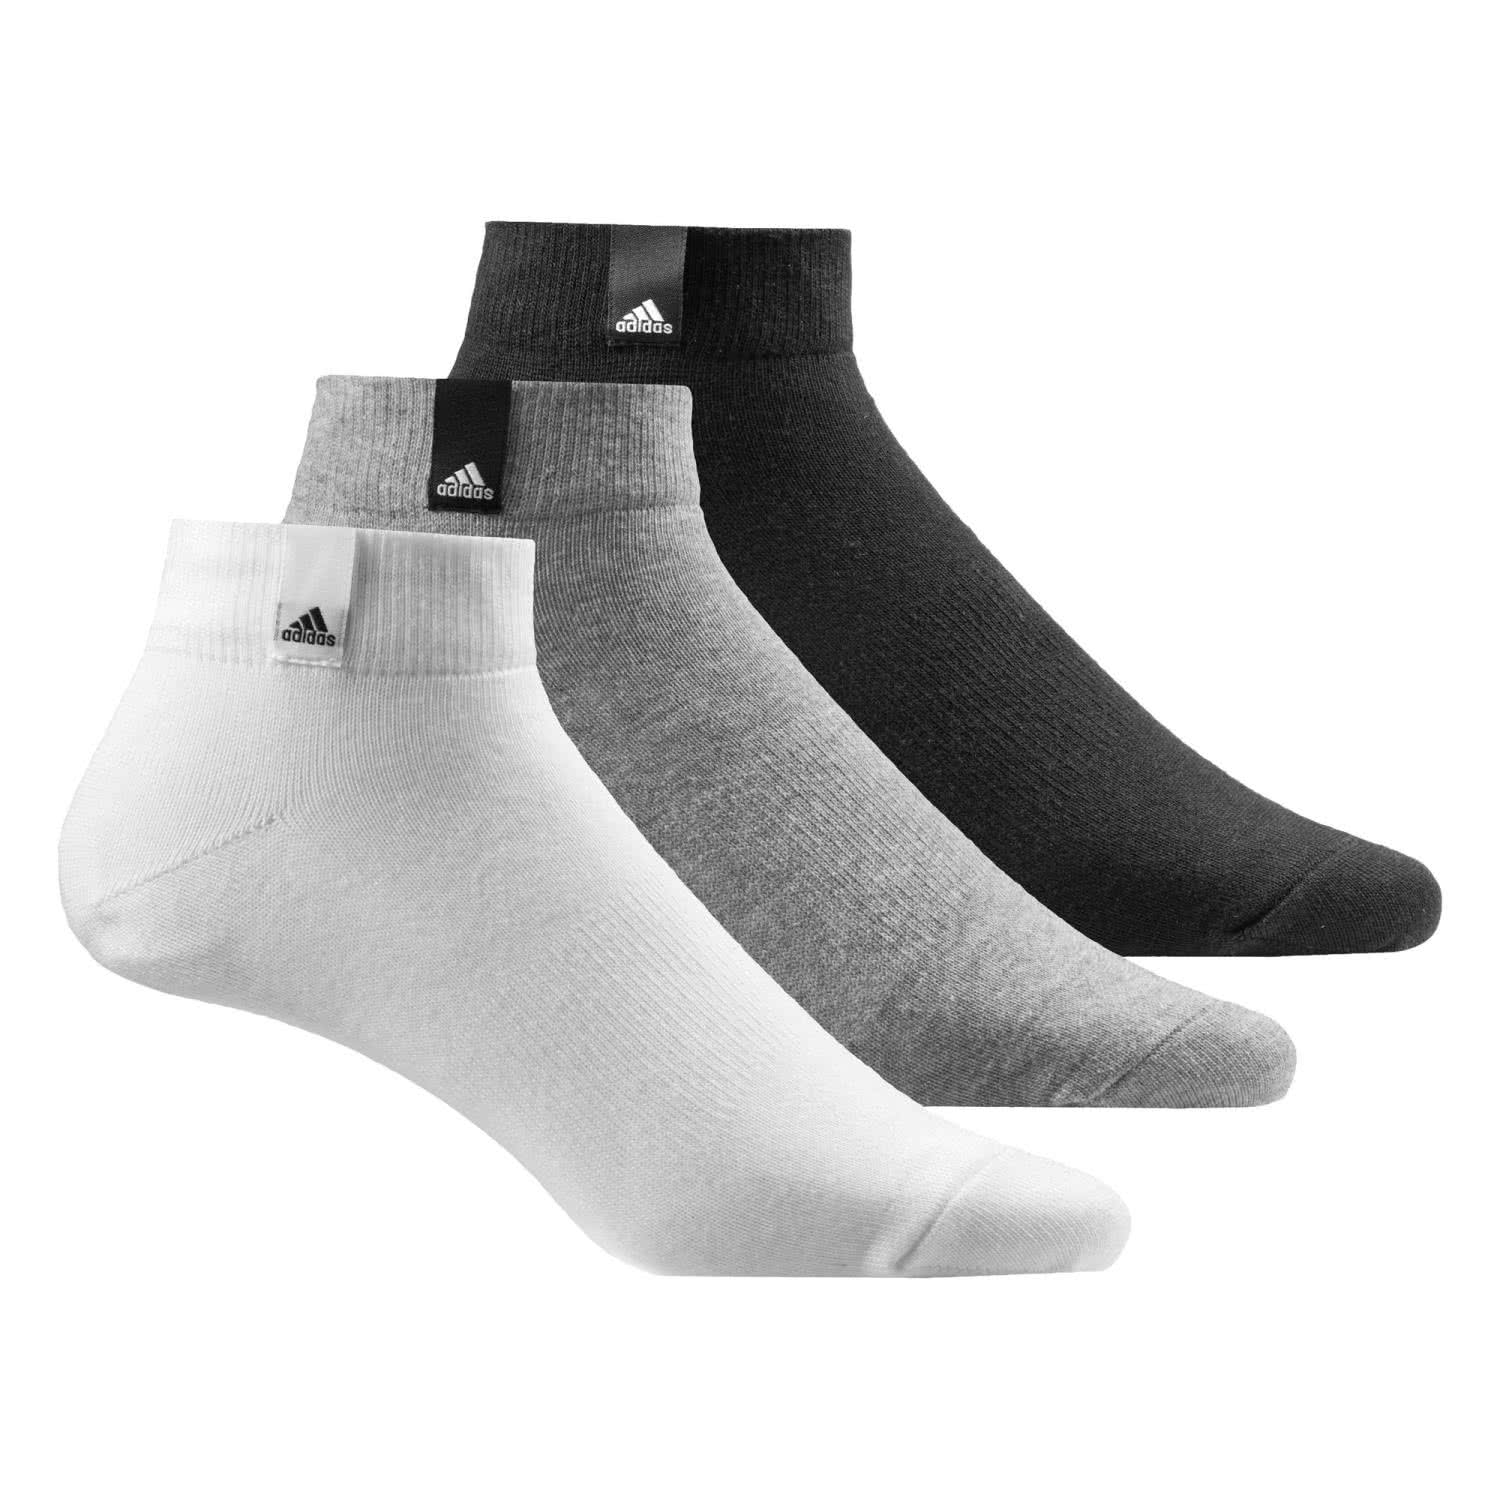 Herrenmode Socken adidas Sportsocken Performance Ankle Thin